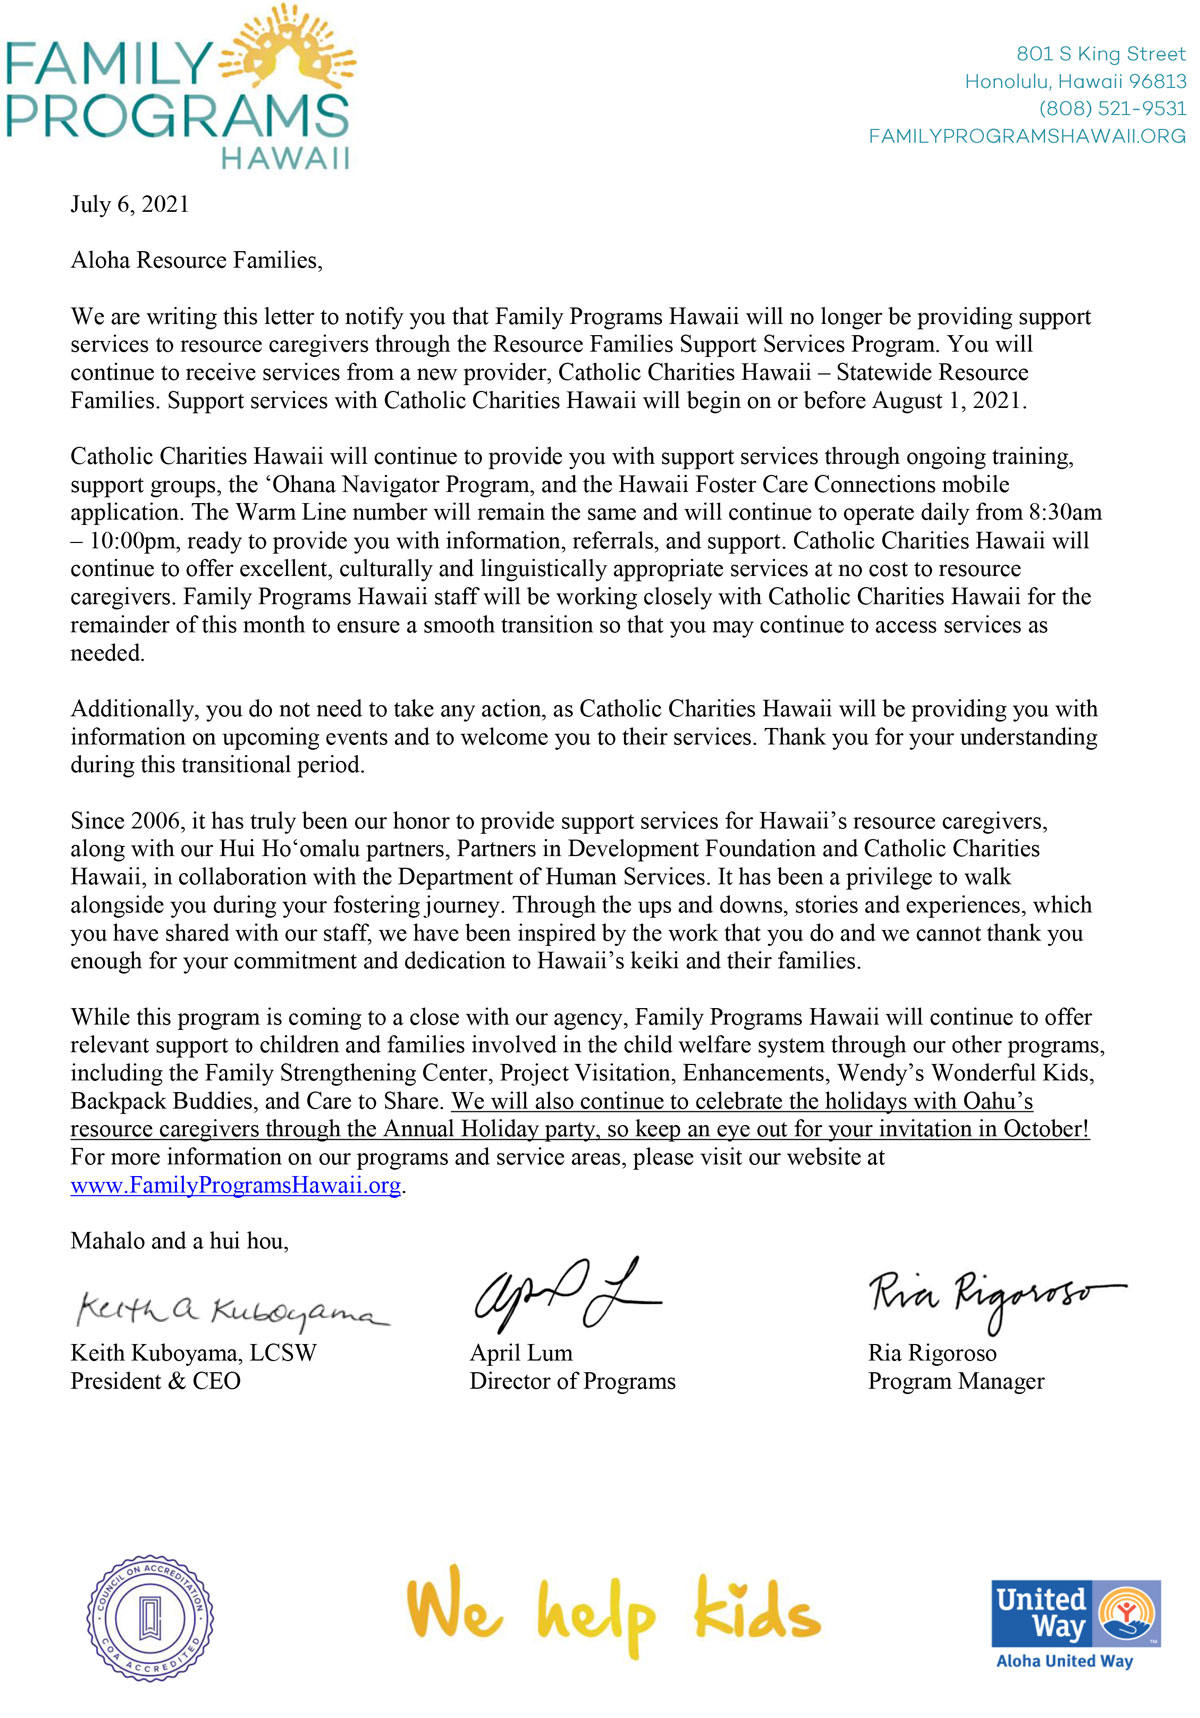 July 6, 2021 Aloha Resource Families, We are writing this letter to notify you that Family Programs Hawaii will no longer be providing support services to resource caregivers through the Resource Families Support Services Program. You will continue to receive services from a new provider, Catholic Charities Hawaii – Statewide Resource Families. Support services with Catholic Charities Hawaii will begin on or before August 1, 2021. Catholic Charities Hawaii will continue to provide you with support services through ongoing training, support groups, the 'Ohana Navigator Program, and the Hawaii Foster Care Connections mobile application. The Warm Line number will remain the same and will continue to operate daily from 8:30am – 10:00pm, ready to provide you with information, referrals, and support. Catholic Charities Hawaii will continue to offer excellent, culturally and linguistically appropriate services at no cost to resource caregivers. Family Programs Hawaii staff will be working closely with Catholic Charities Hawaii for the remainder of this month to ensure a smooth transition so that you may continue to access services as needed. Additionally, you do not need to take any action, as Catholic Charities Hawaii will be providing you with information on upcoming events and to welcome you to their services. Thank you for your understanding during this transitional period. Since 2006, it has truly been our honor to provide support services for Hawaii's resource caregivers, along with our Hui Ho'omalu partners, Partners in Development Foundation and Catholic Charities Hawaii, in collaboration with the Department of Human Services. It has been a privilege to walk alongside you during your fostering journey. Through the ups and downs, stories and experiences, which you have shared with our staff, we have been inspired by the work that you do and we cannot thank you enough for your commitment and dedication to Hawaii's keiki and their families. While this program is comin